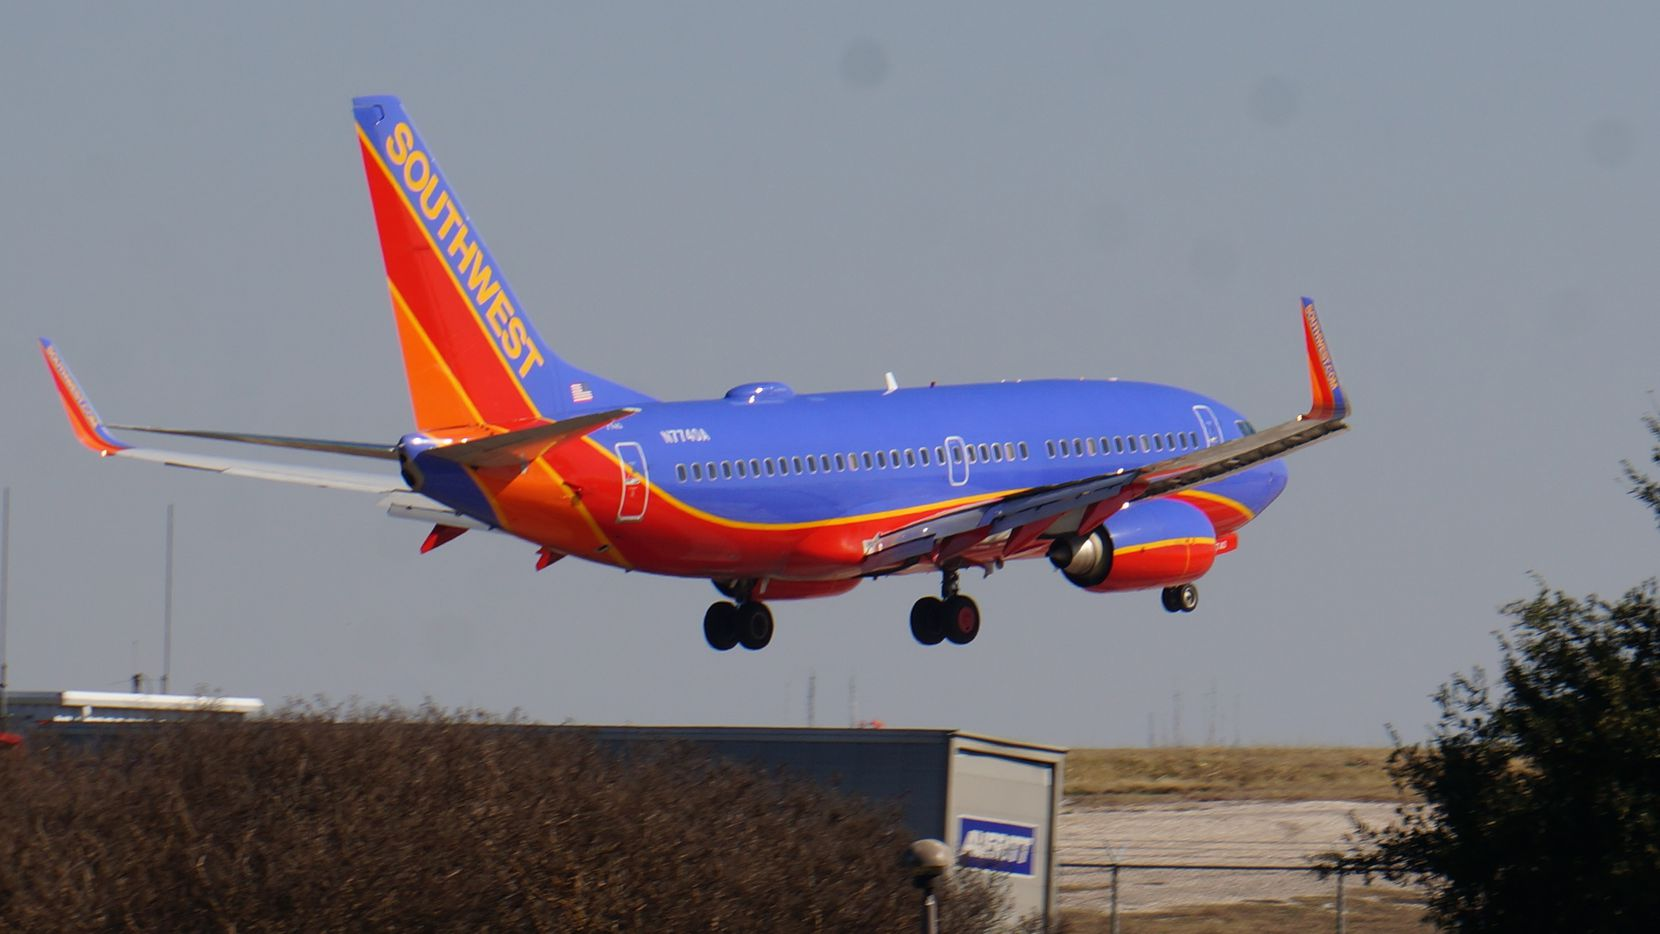 A Boeing 737-700 jet operated by Southwest Airlines landed at Dallas Love Field in February.